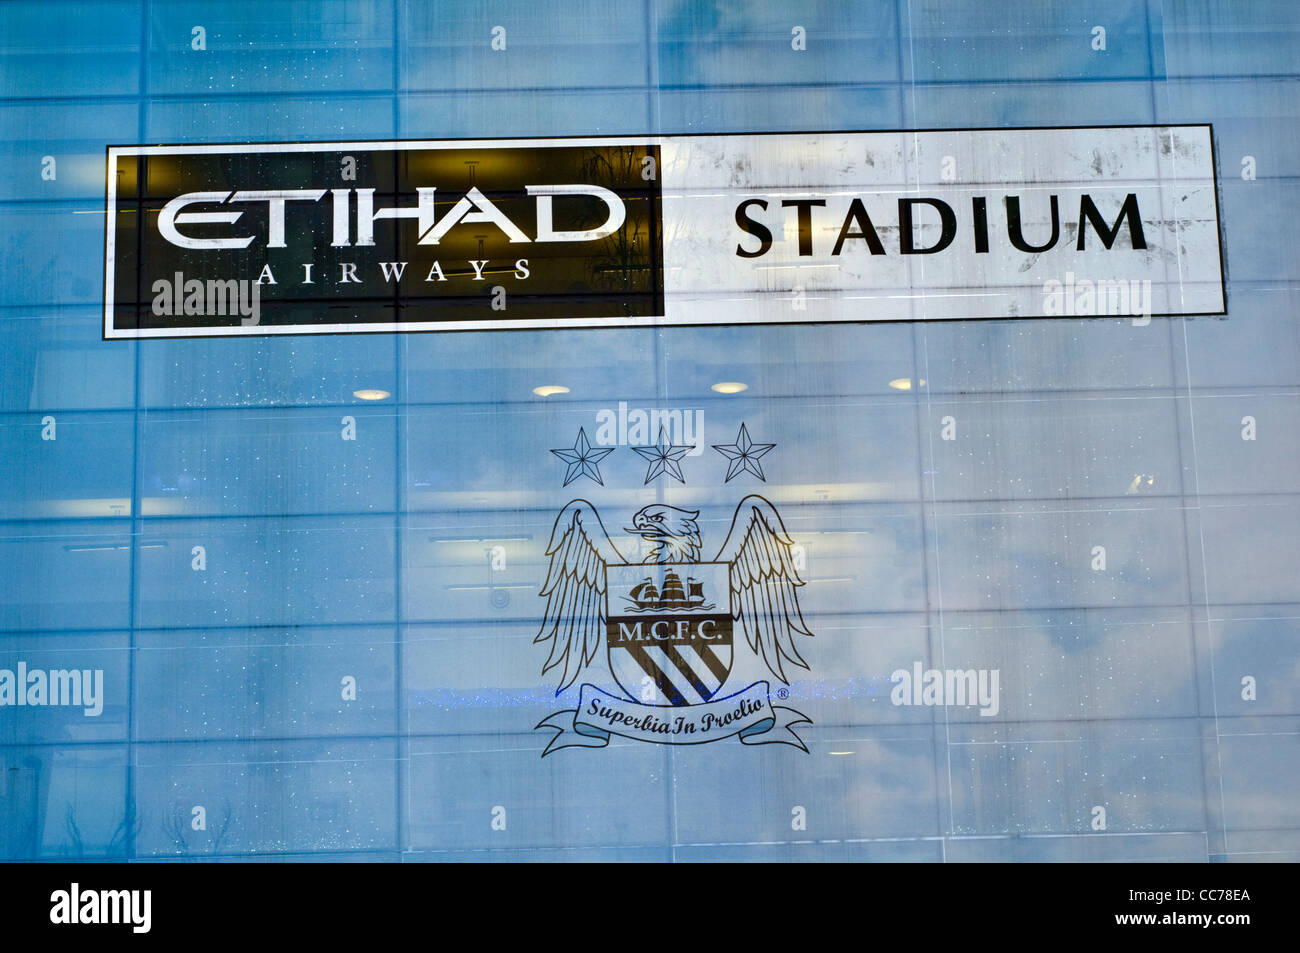 Manchester City football club's Etihad stadium in England, formerly known as Eastlands - Stock Image